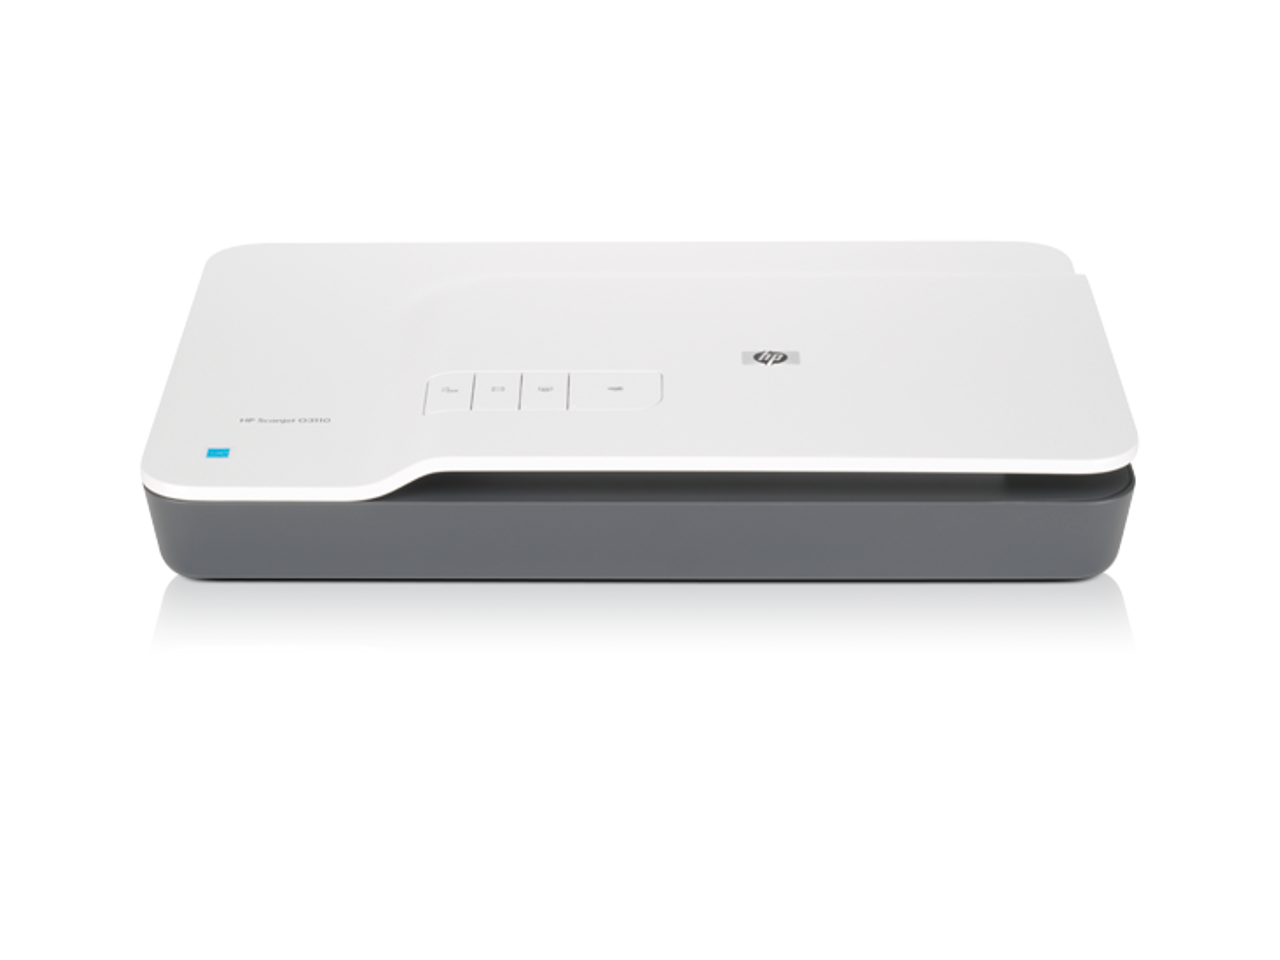 HP Scanjet G3110 Photo Scanner (New - In Box)